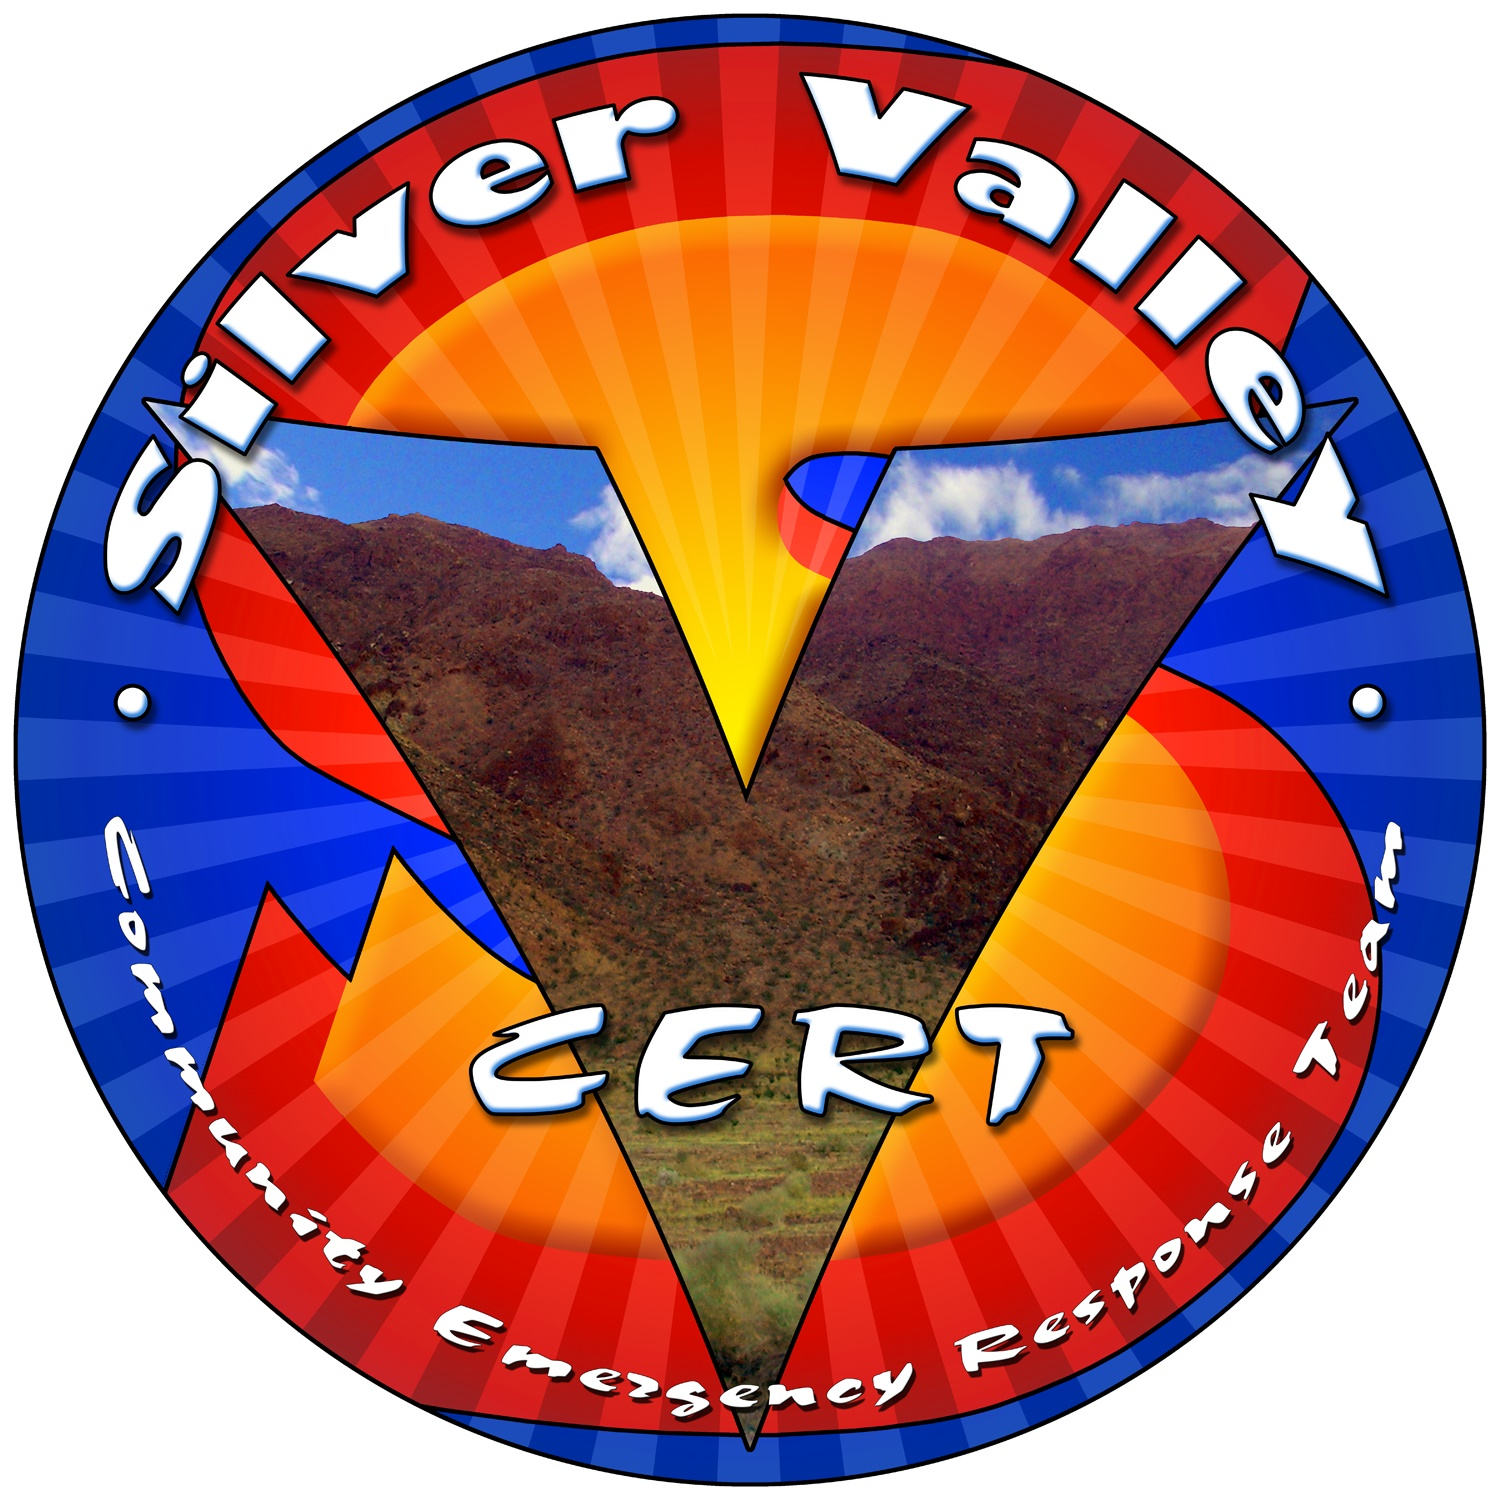 Silver Valley CERT volunteers respond to emergency situations.